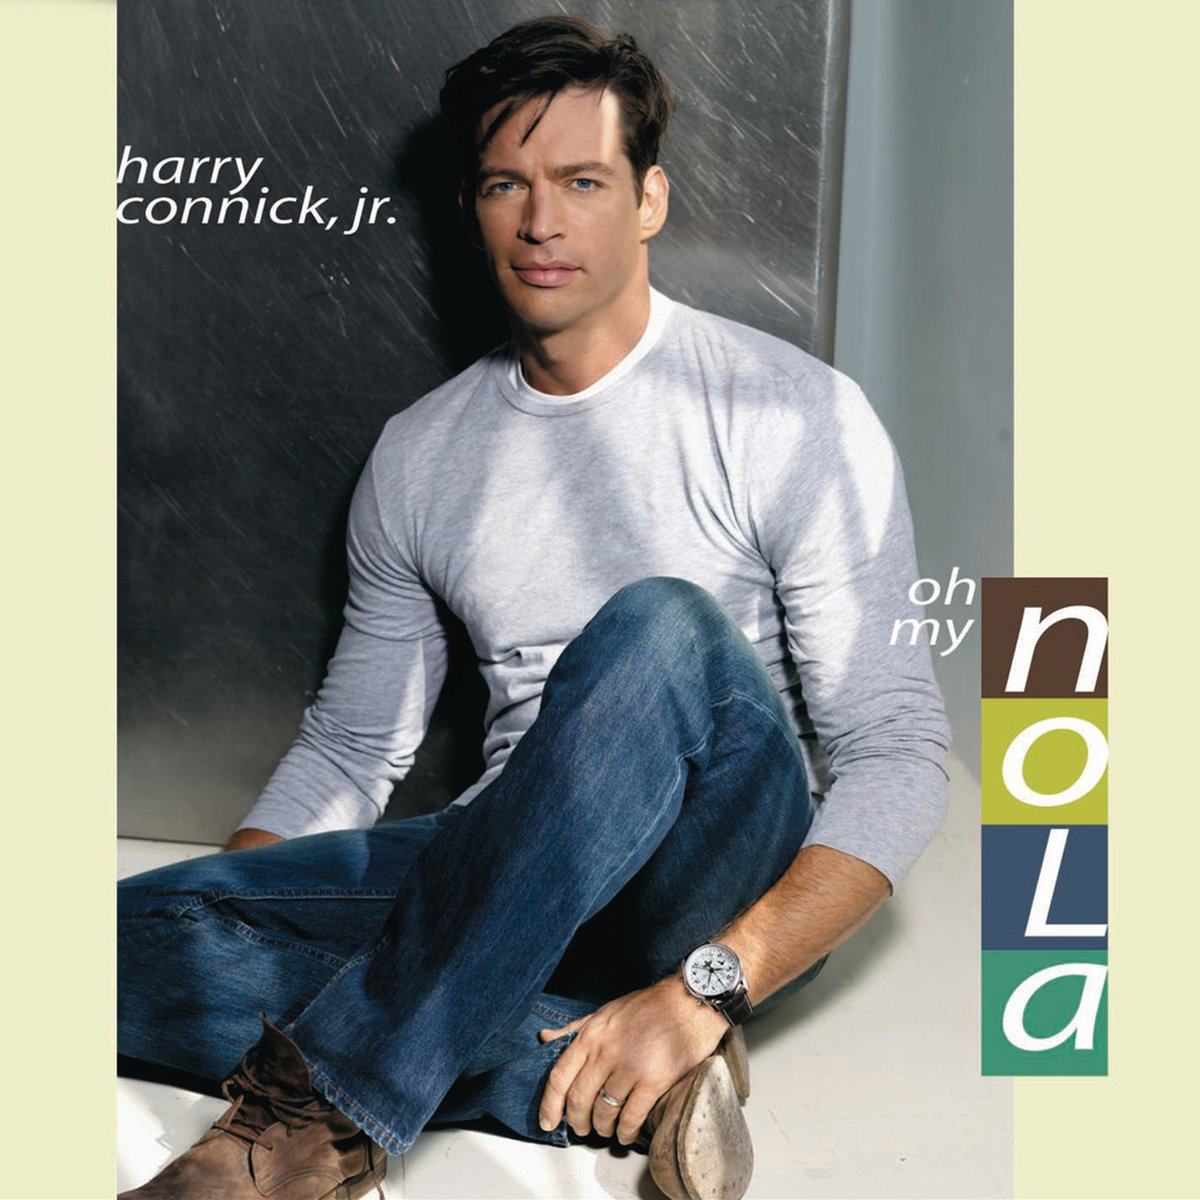 Harry Connick Jr., Oh, My Nola